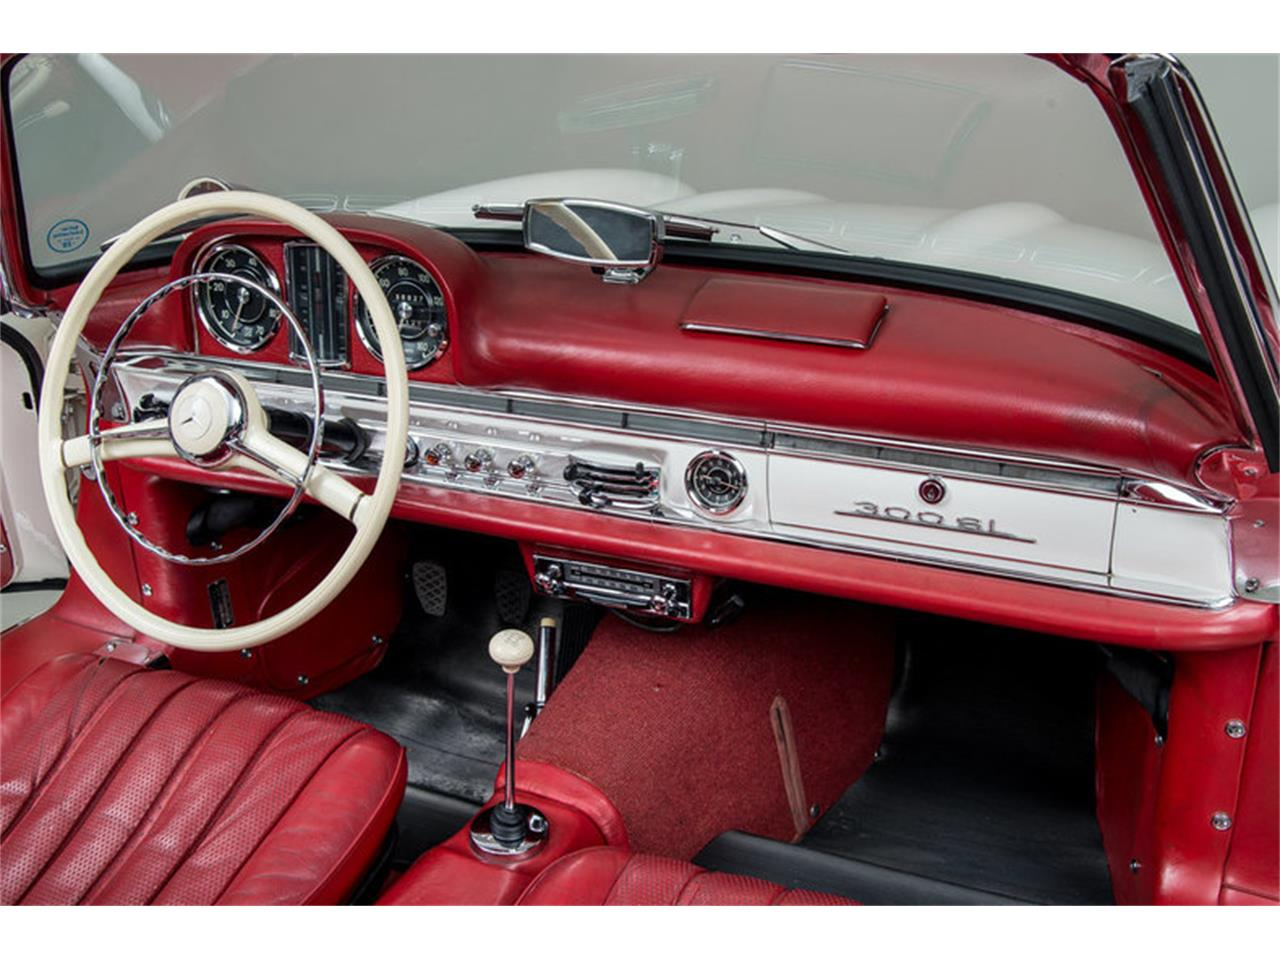 Large Picture of 1963 Mercedes-Benz 300SL Roadster located in Scotts Valley California Offered by Canepa - EFPZ